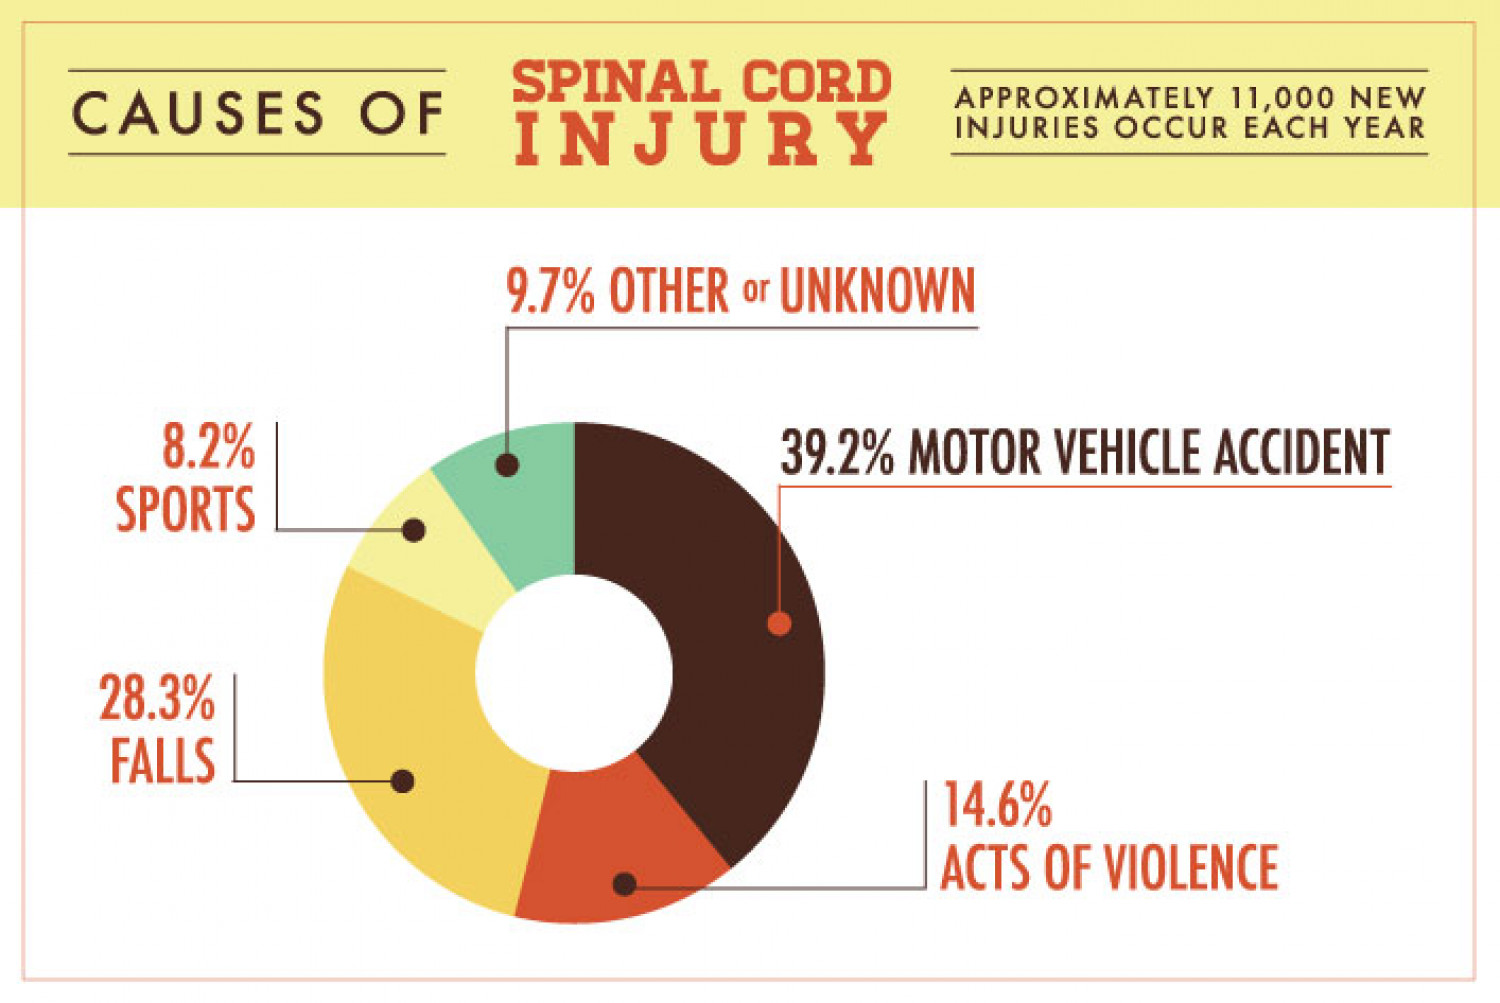 causes of spinal cord injury infographic